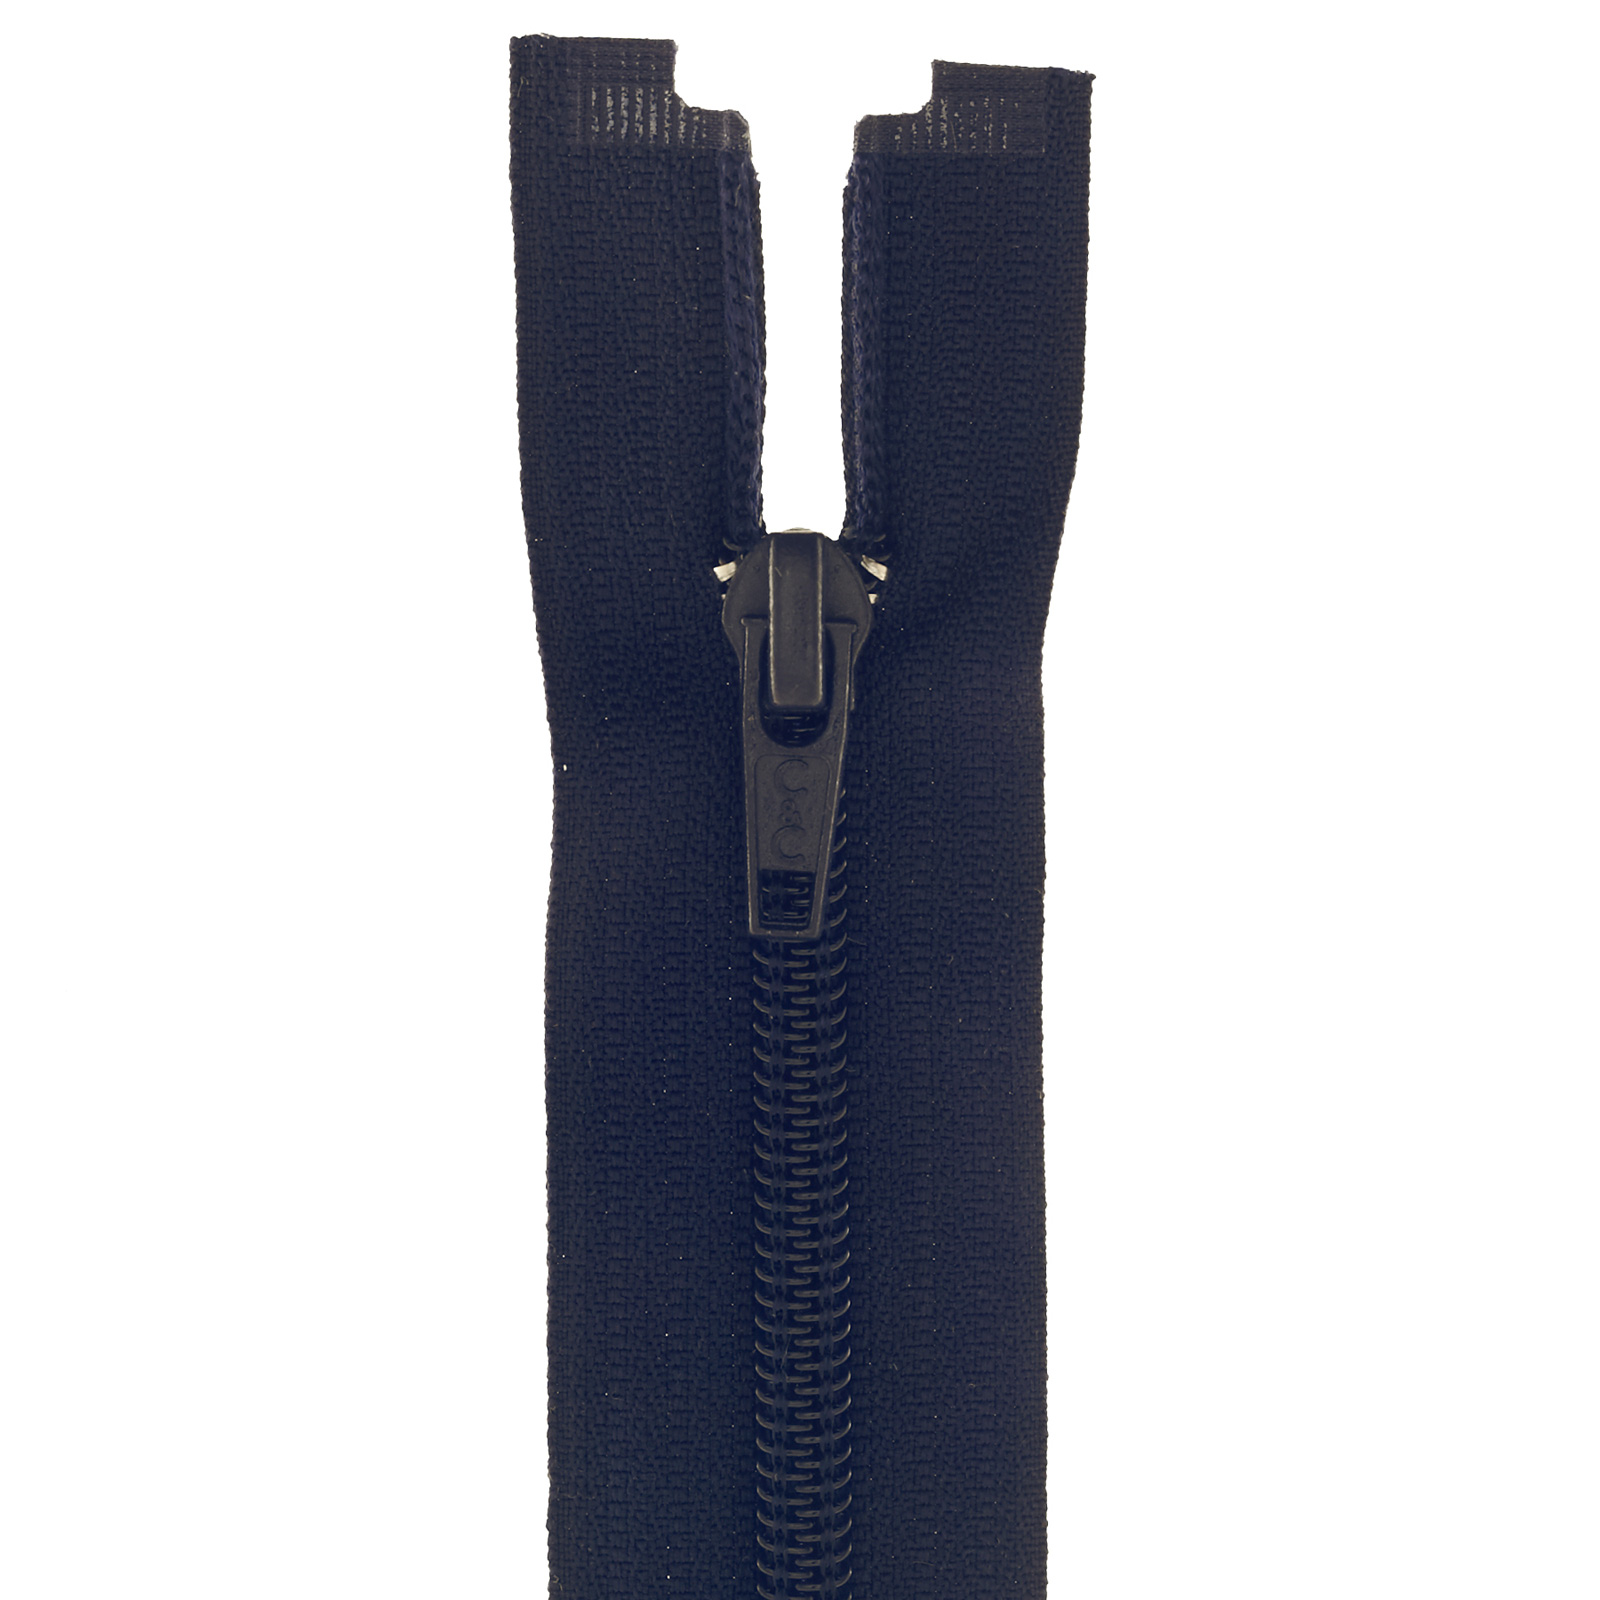 Coats & Clark Coil Separating Zipper 22'' Navy